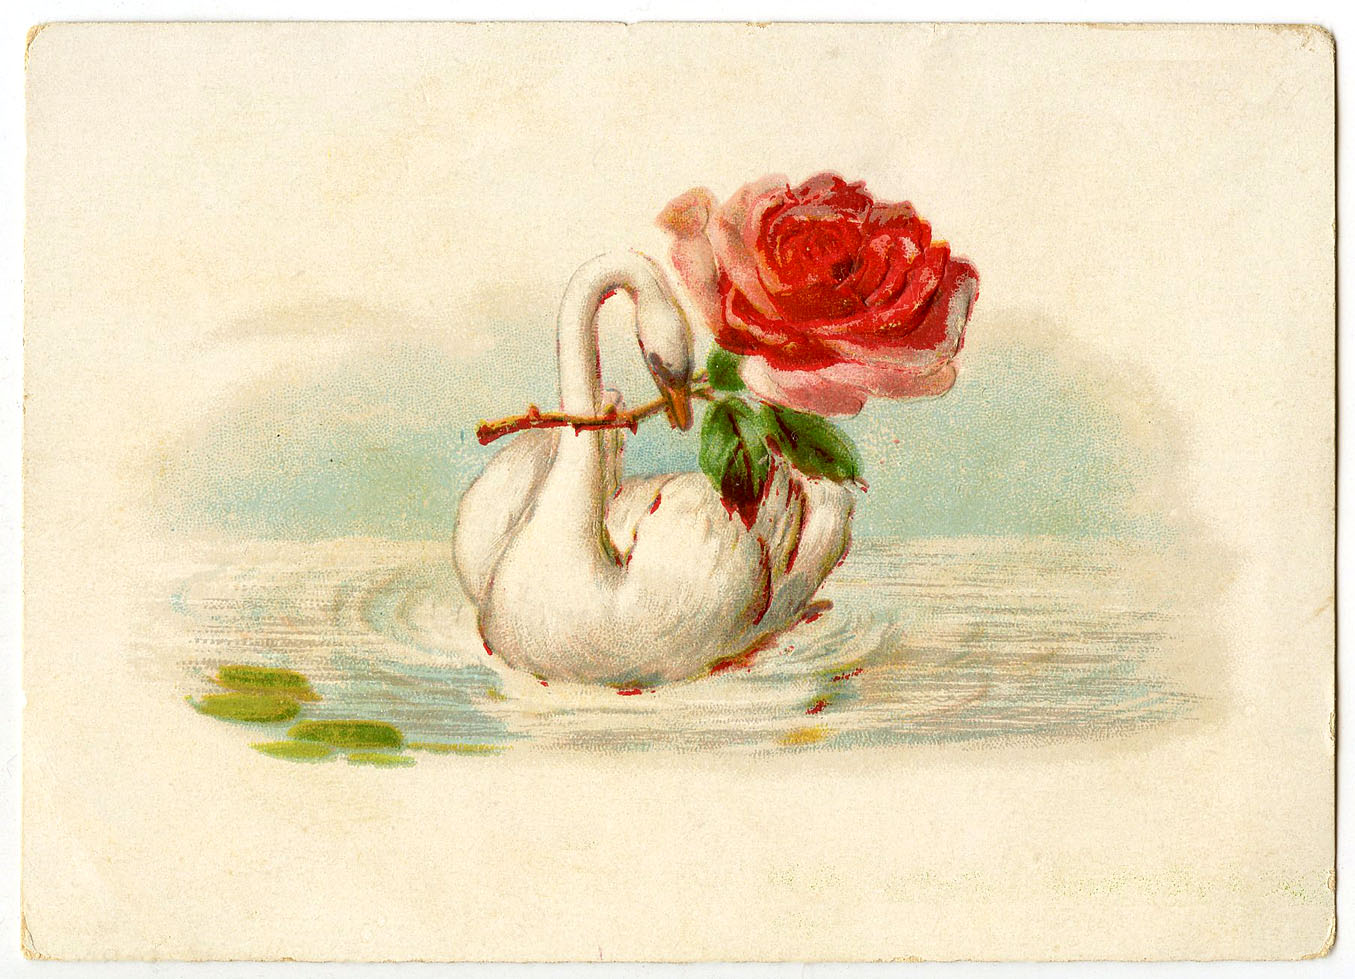 Vintage Image - French Swan with Rose - The Graphics Fairy